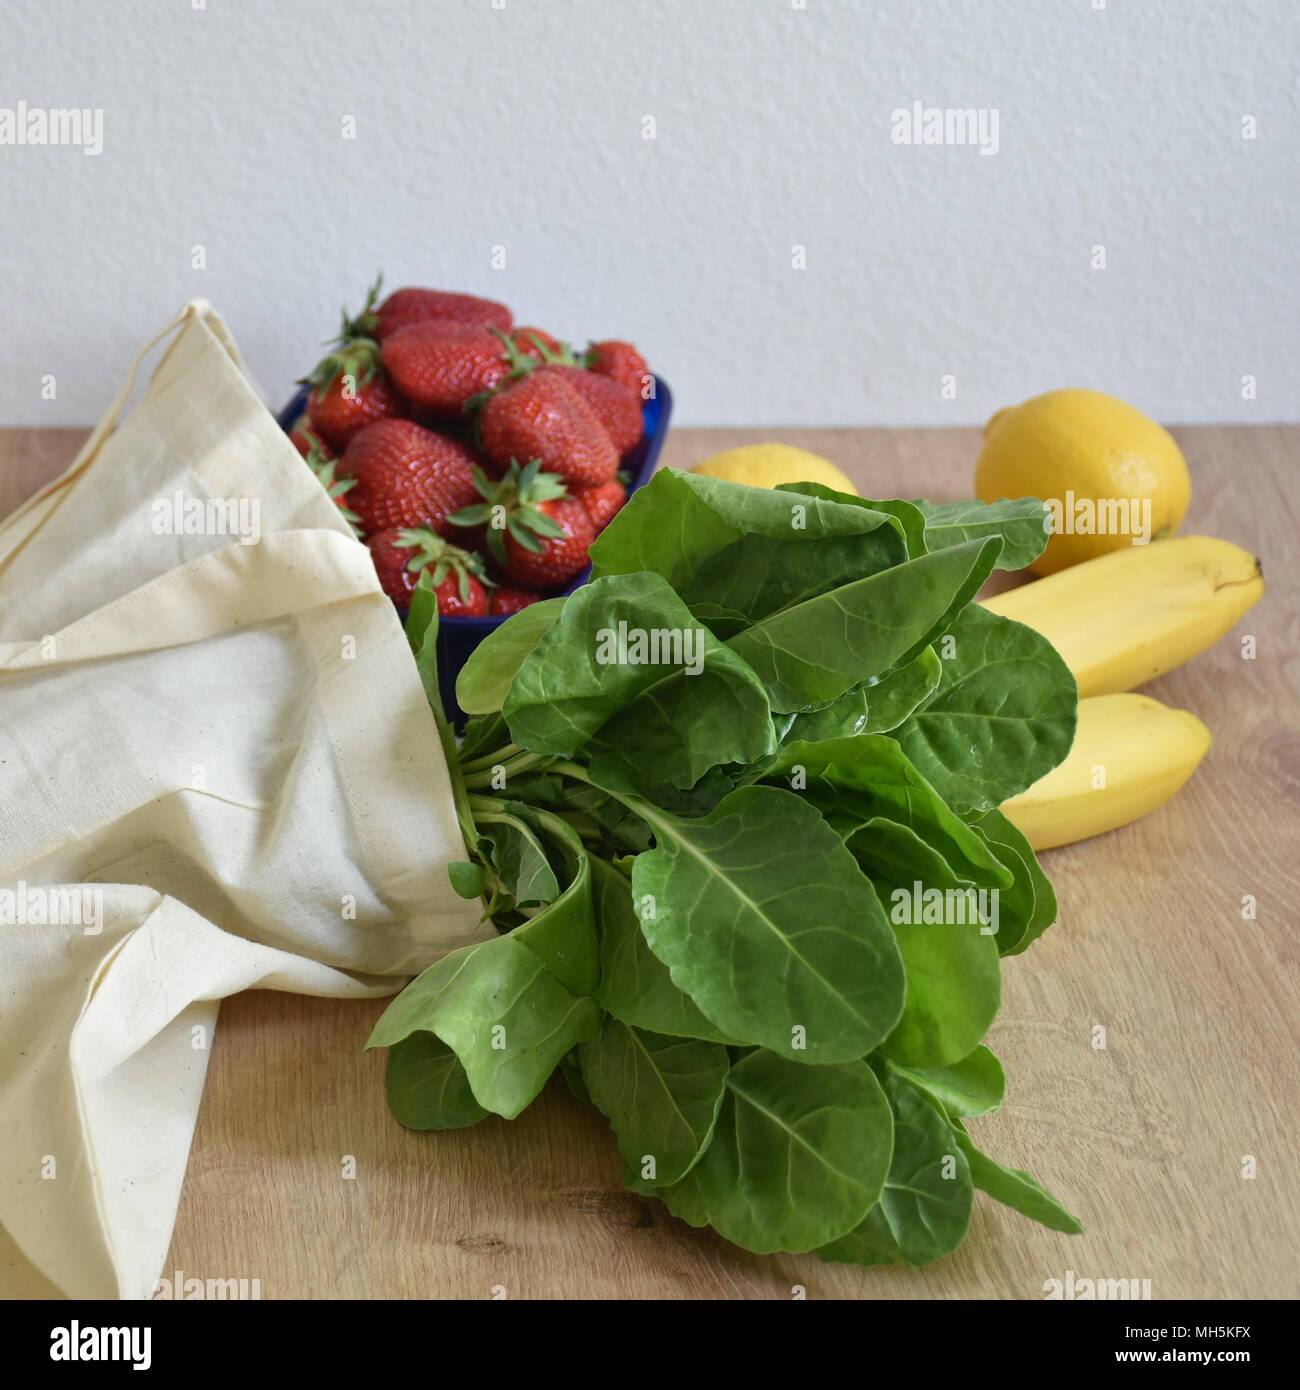 Food in reusable bag - Stock Image